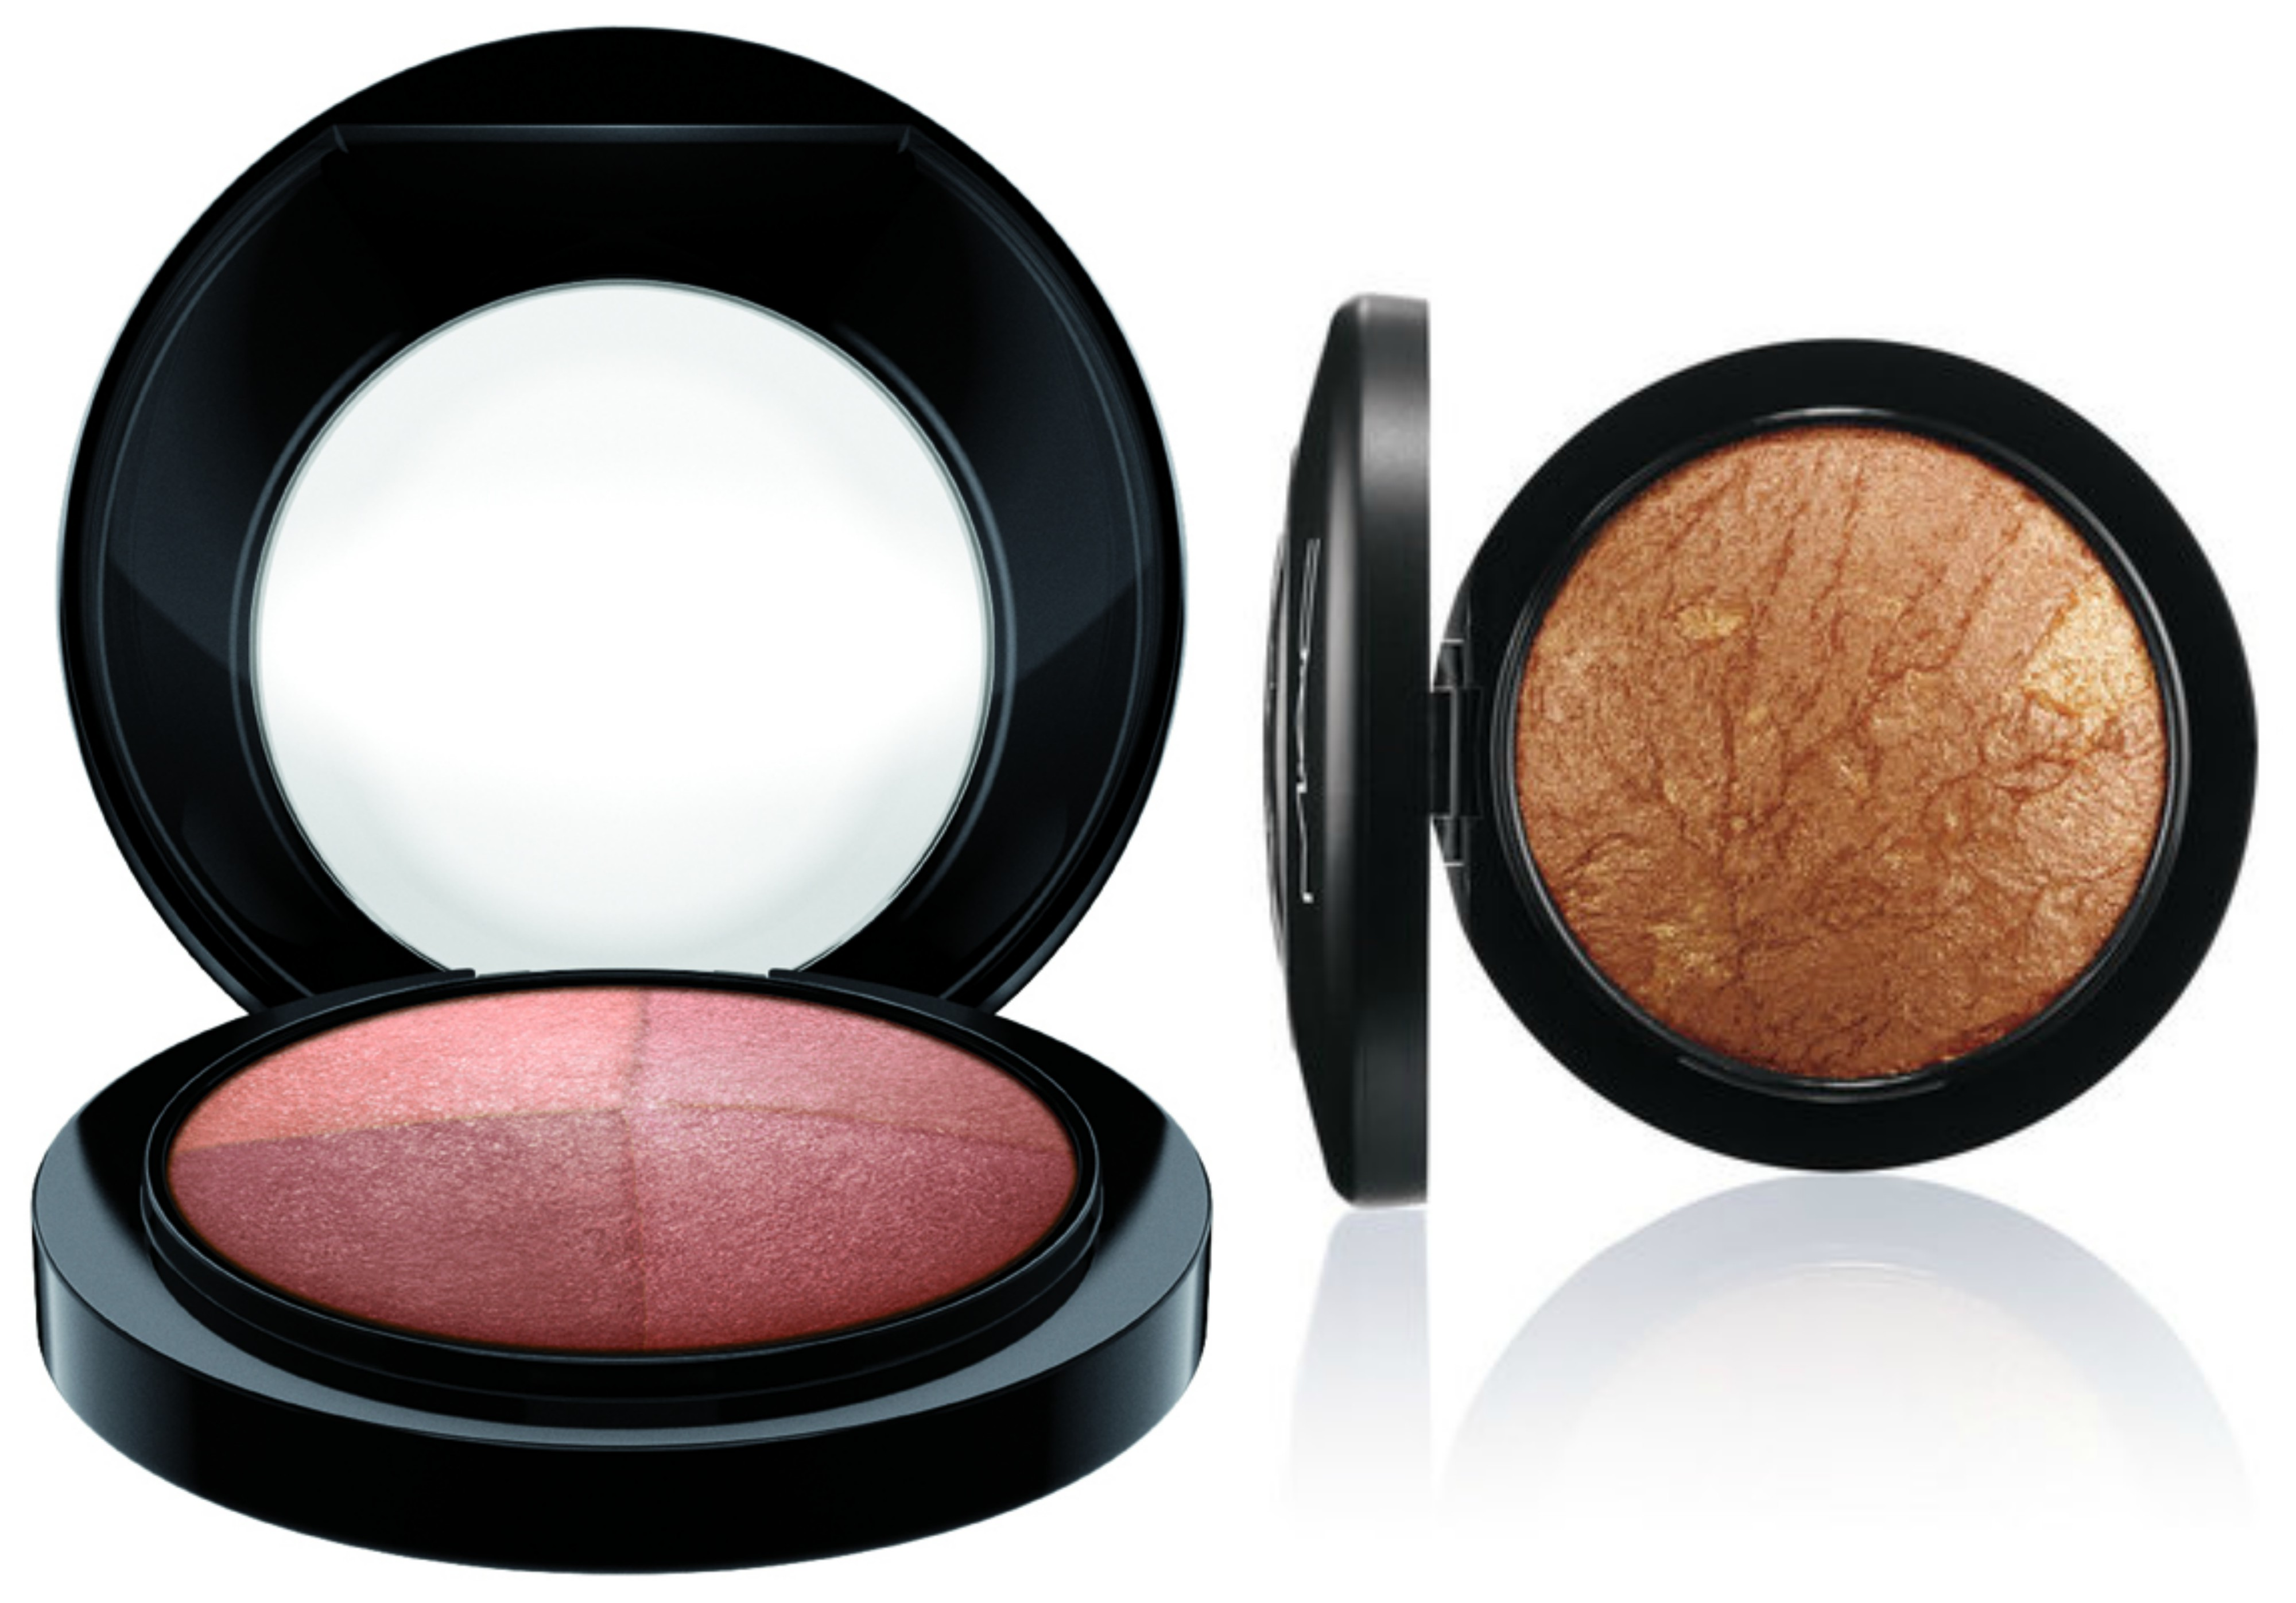 Summer Essentials: Perfectly Lit and Gold Deposit by Mac Cosmetics